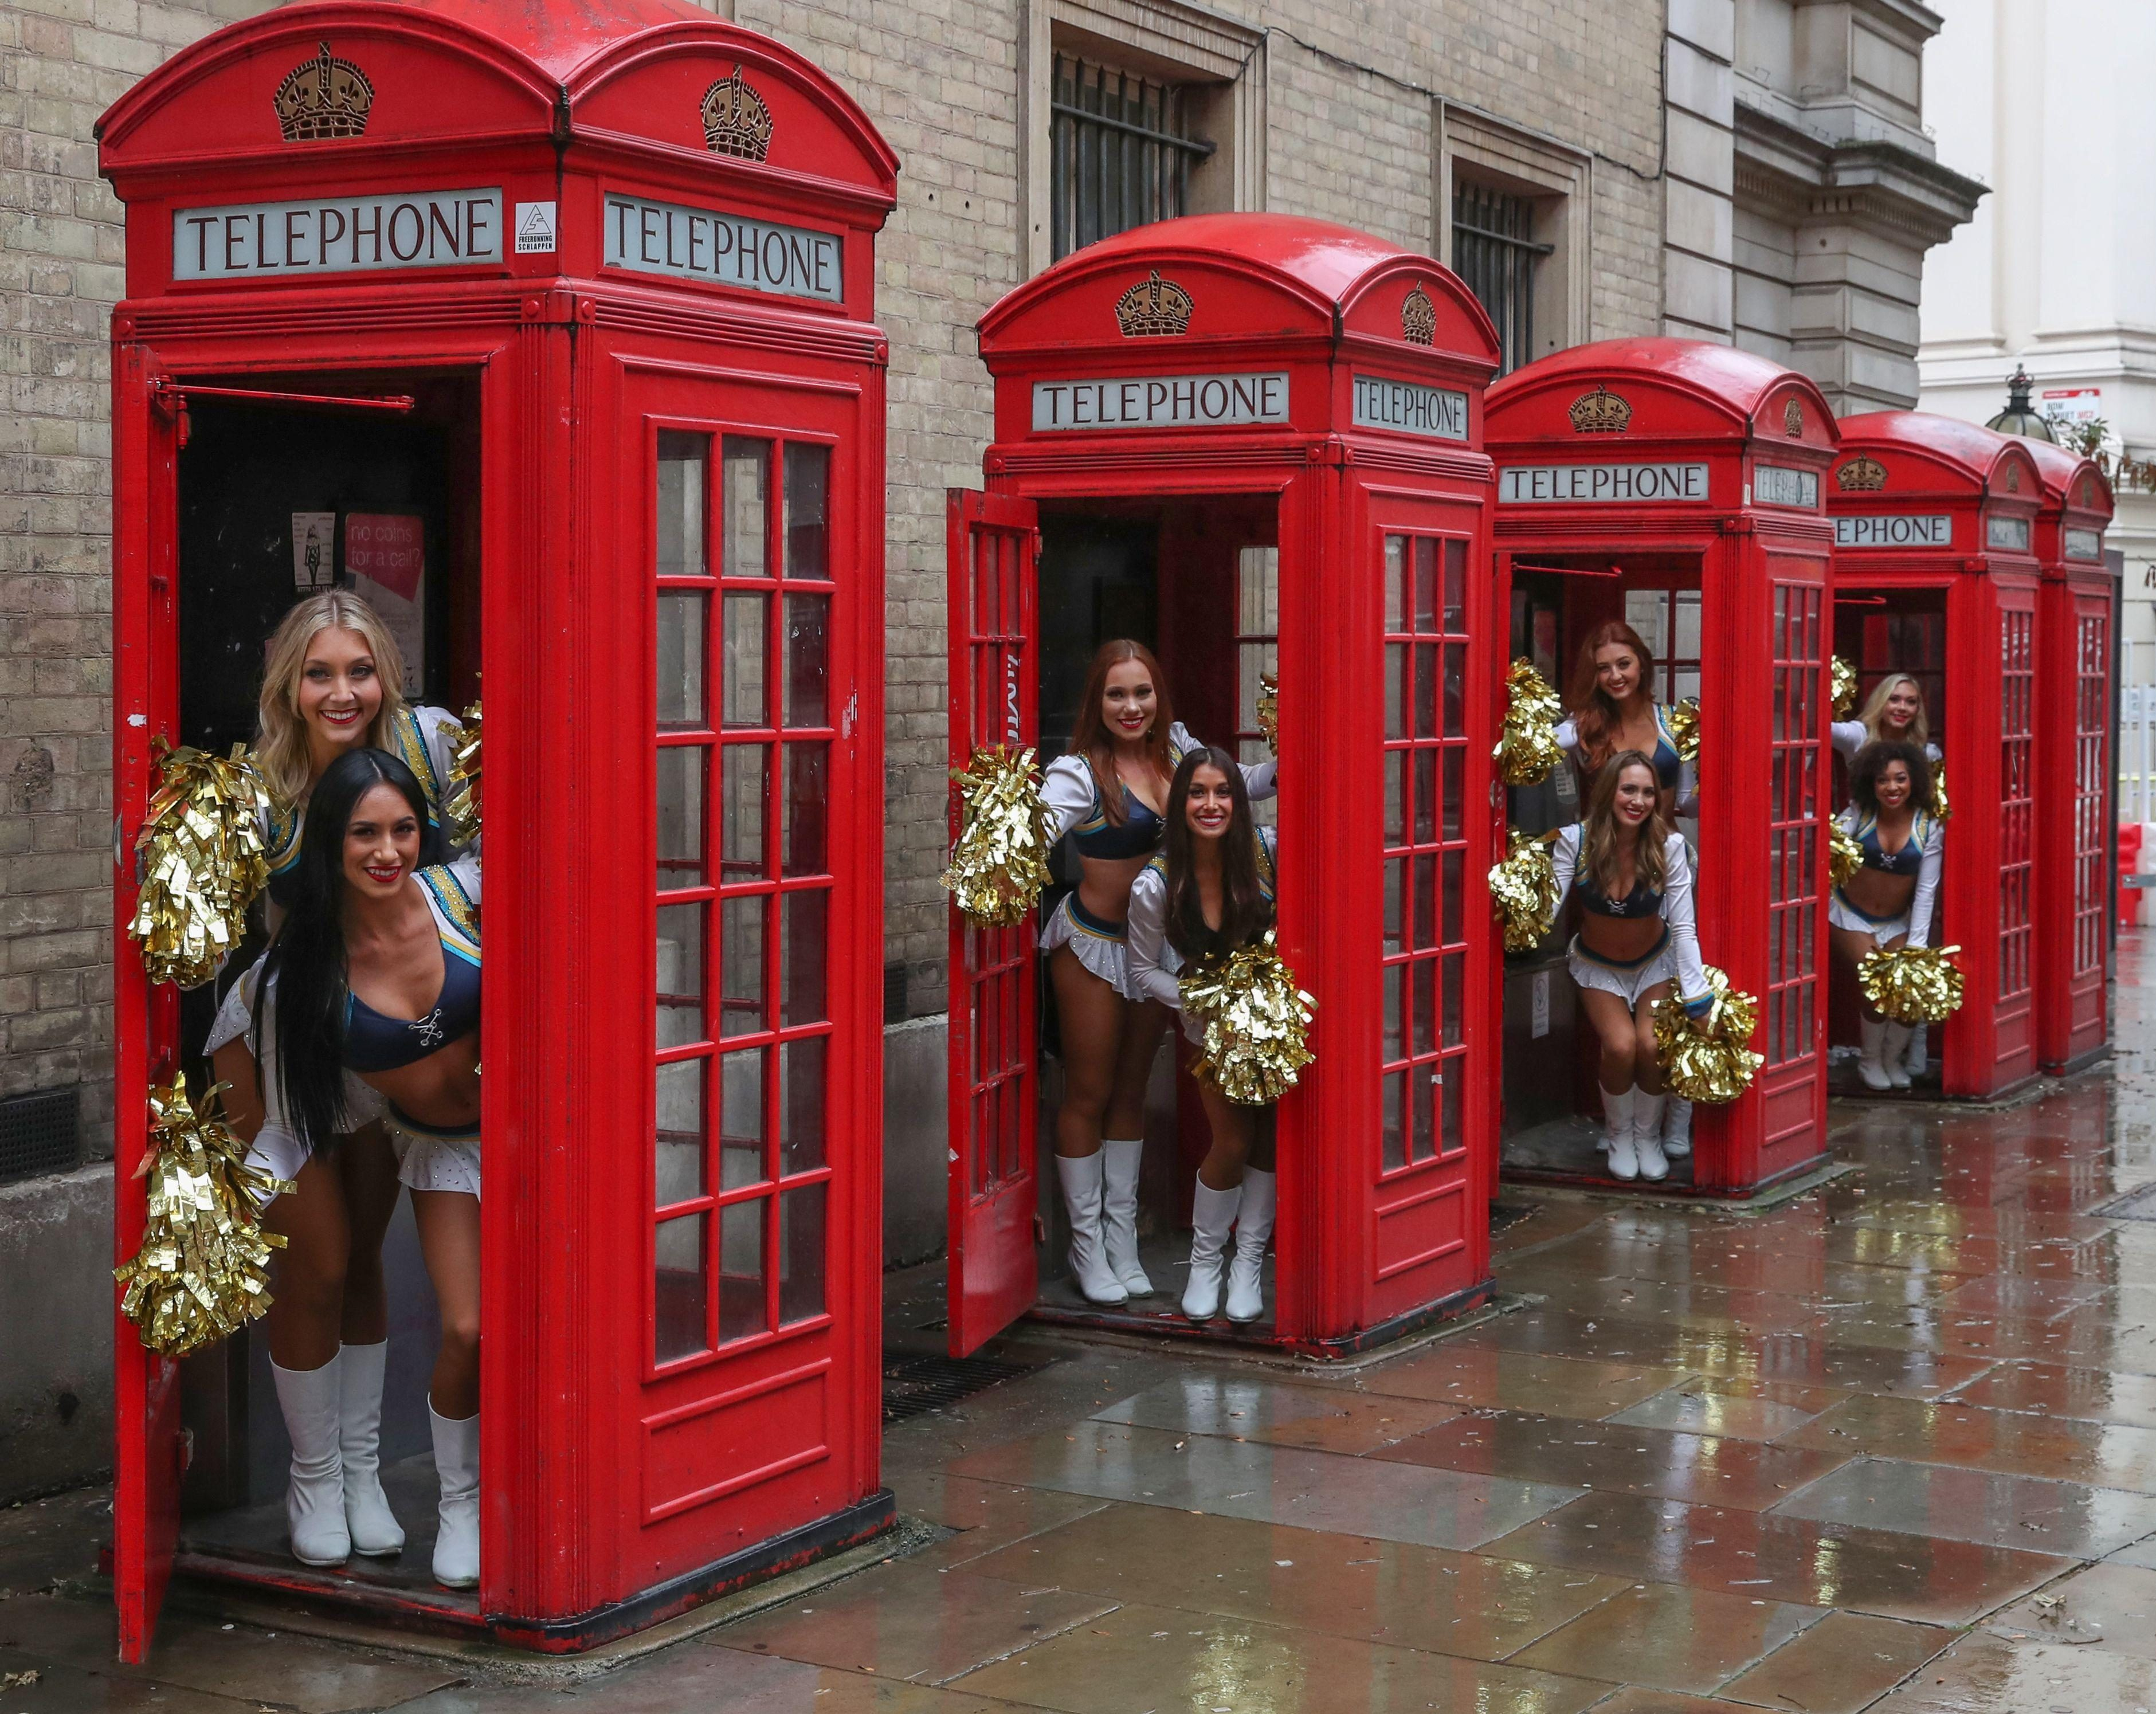 No London sight was left un-visited by the Chargers girls on Wednesday